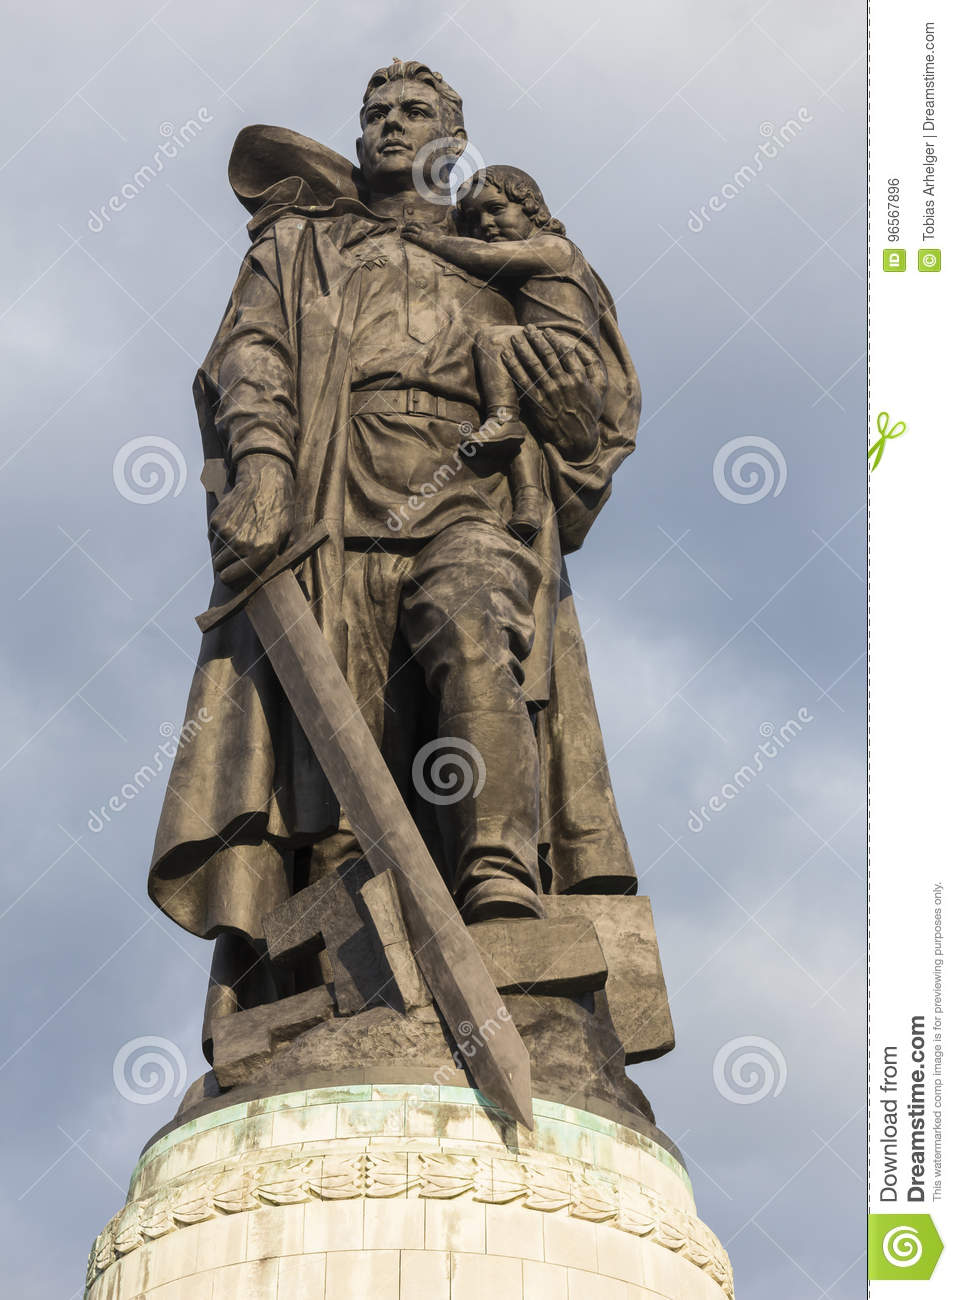 Statue At The Russian War Memorial In Treptow Berlin Germany Stock.